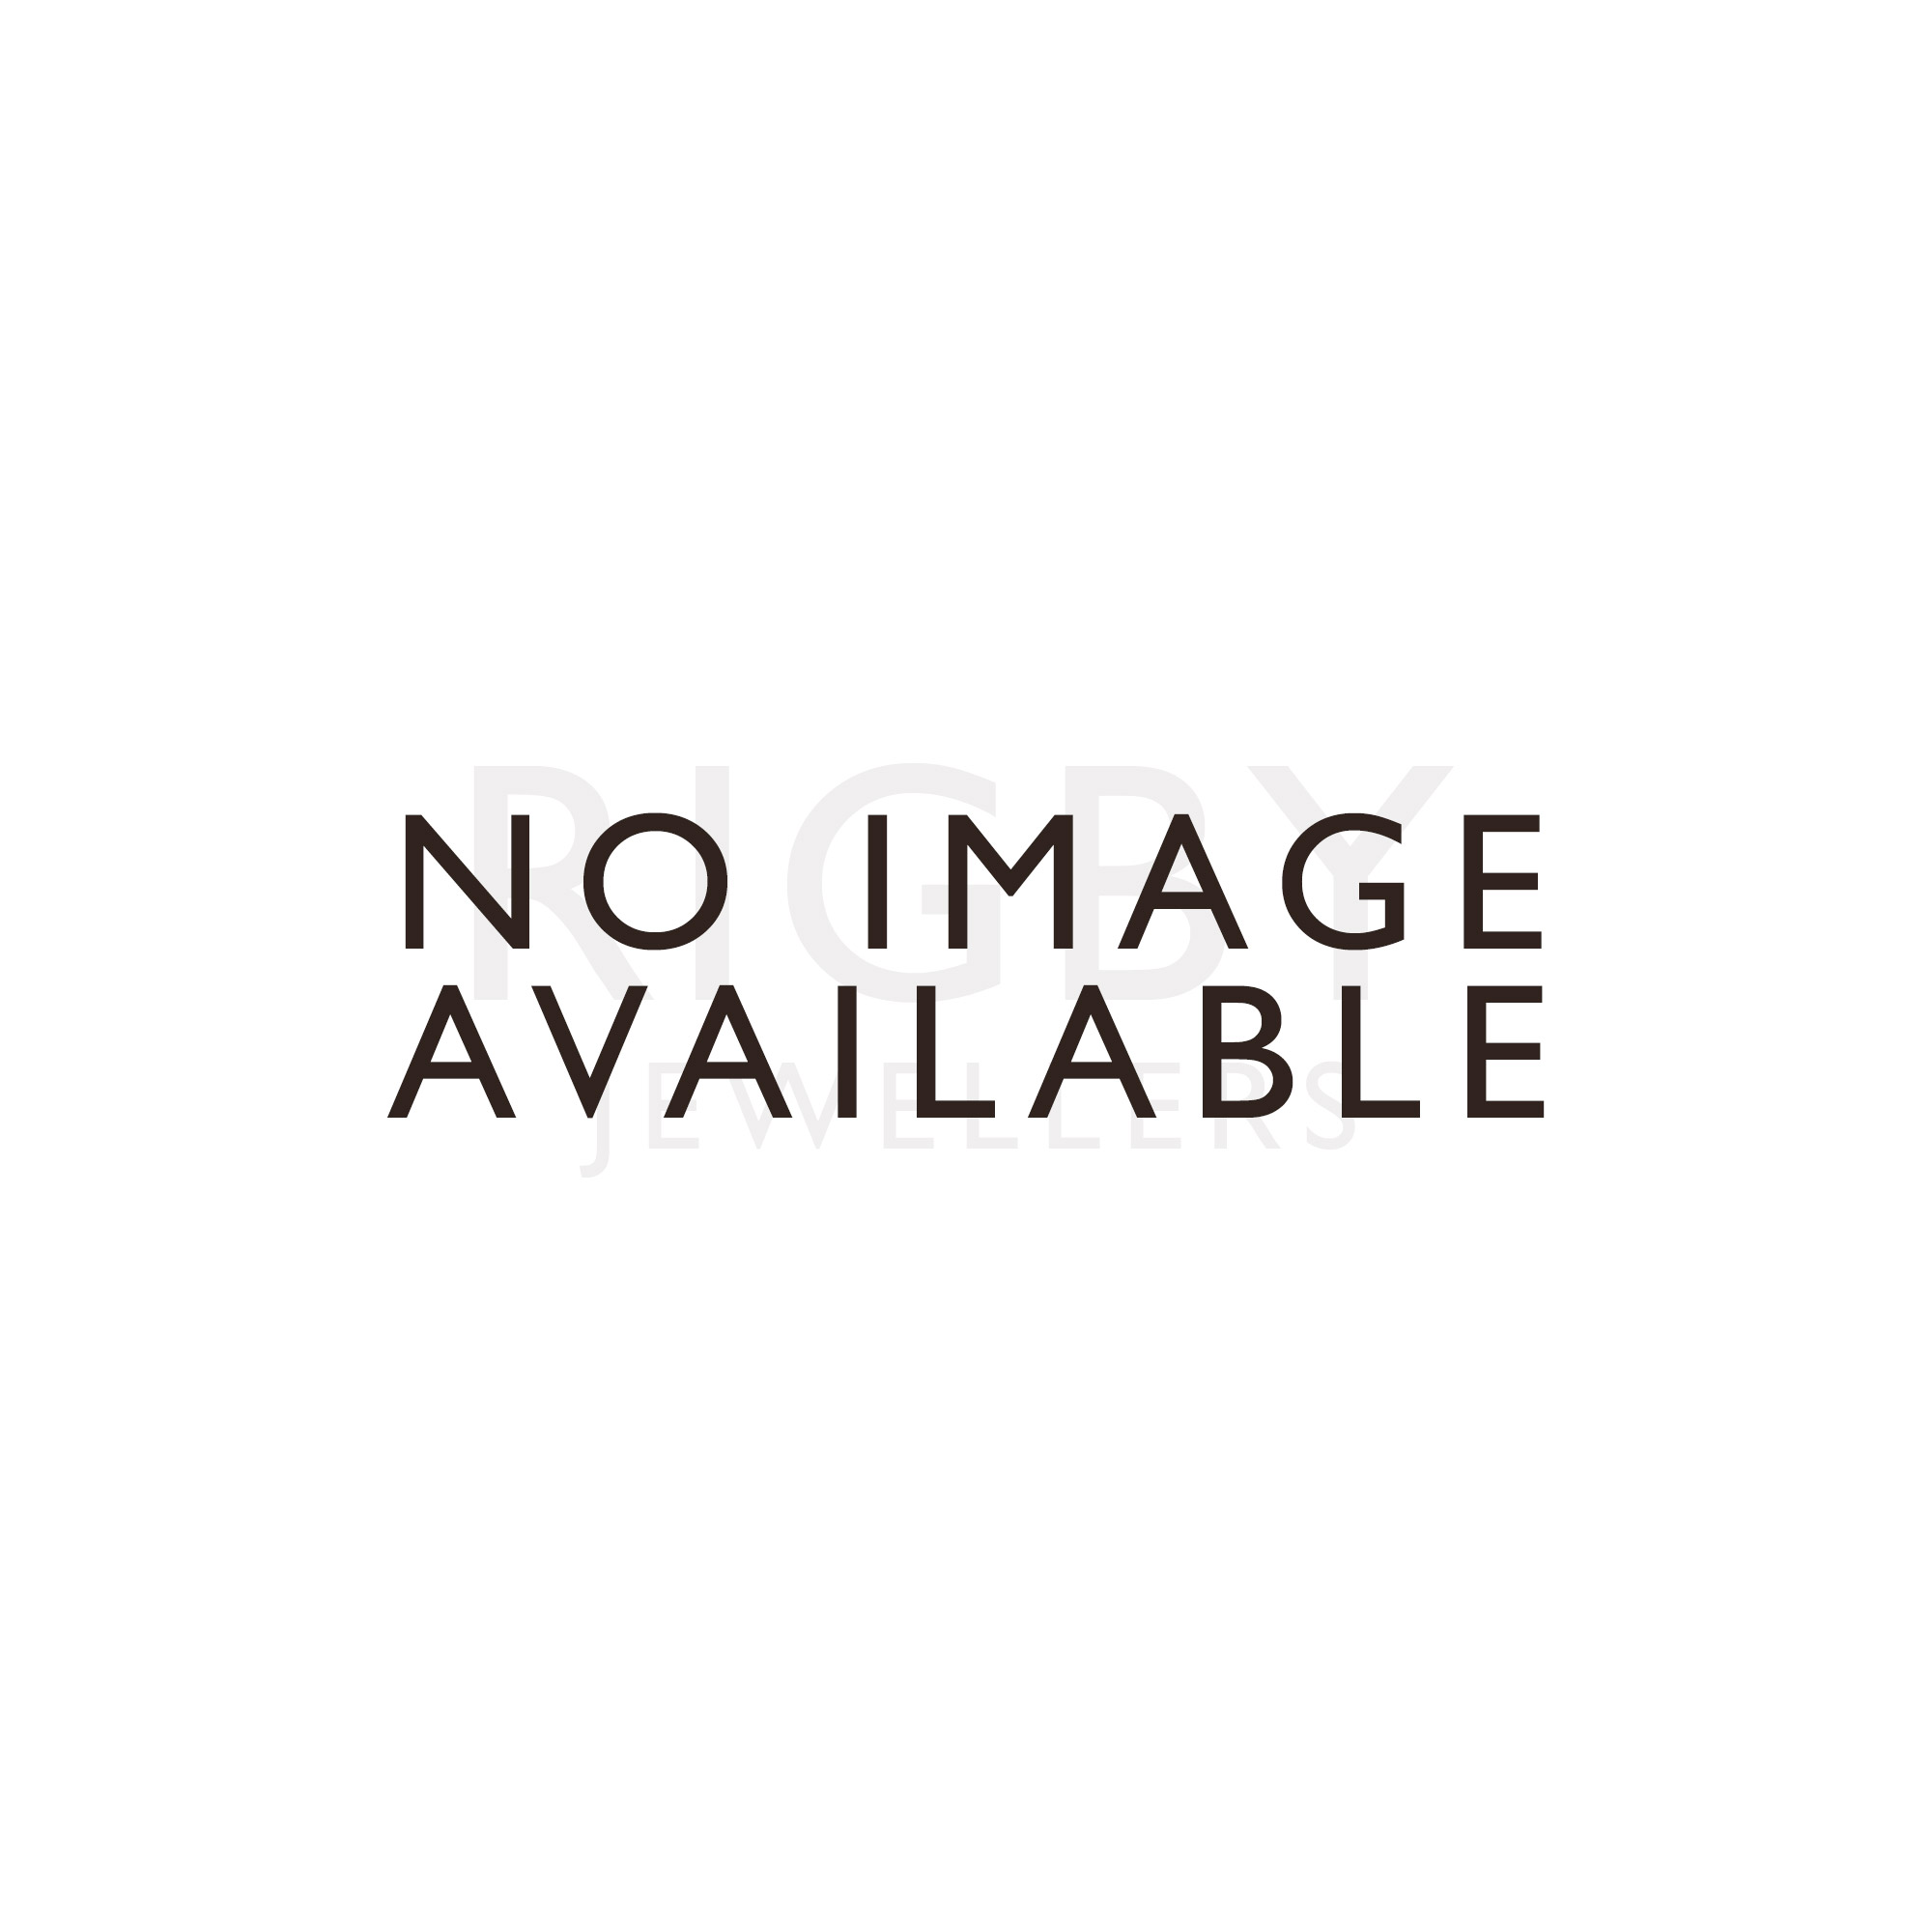 Seiko Clocks Dark Wood Westminster Chime Battery Wall Clock QXH202B